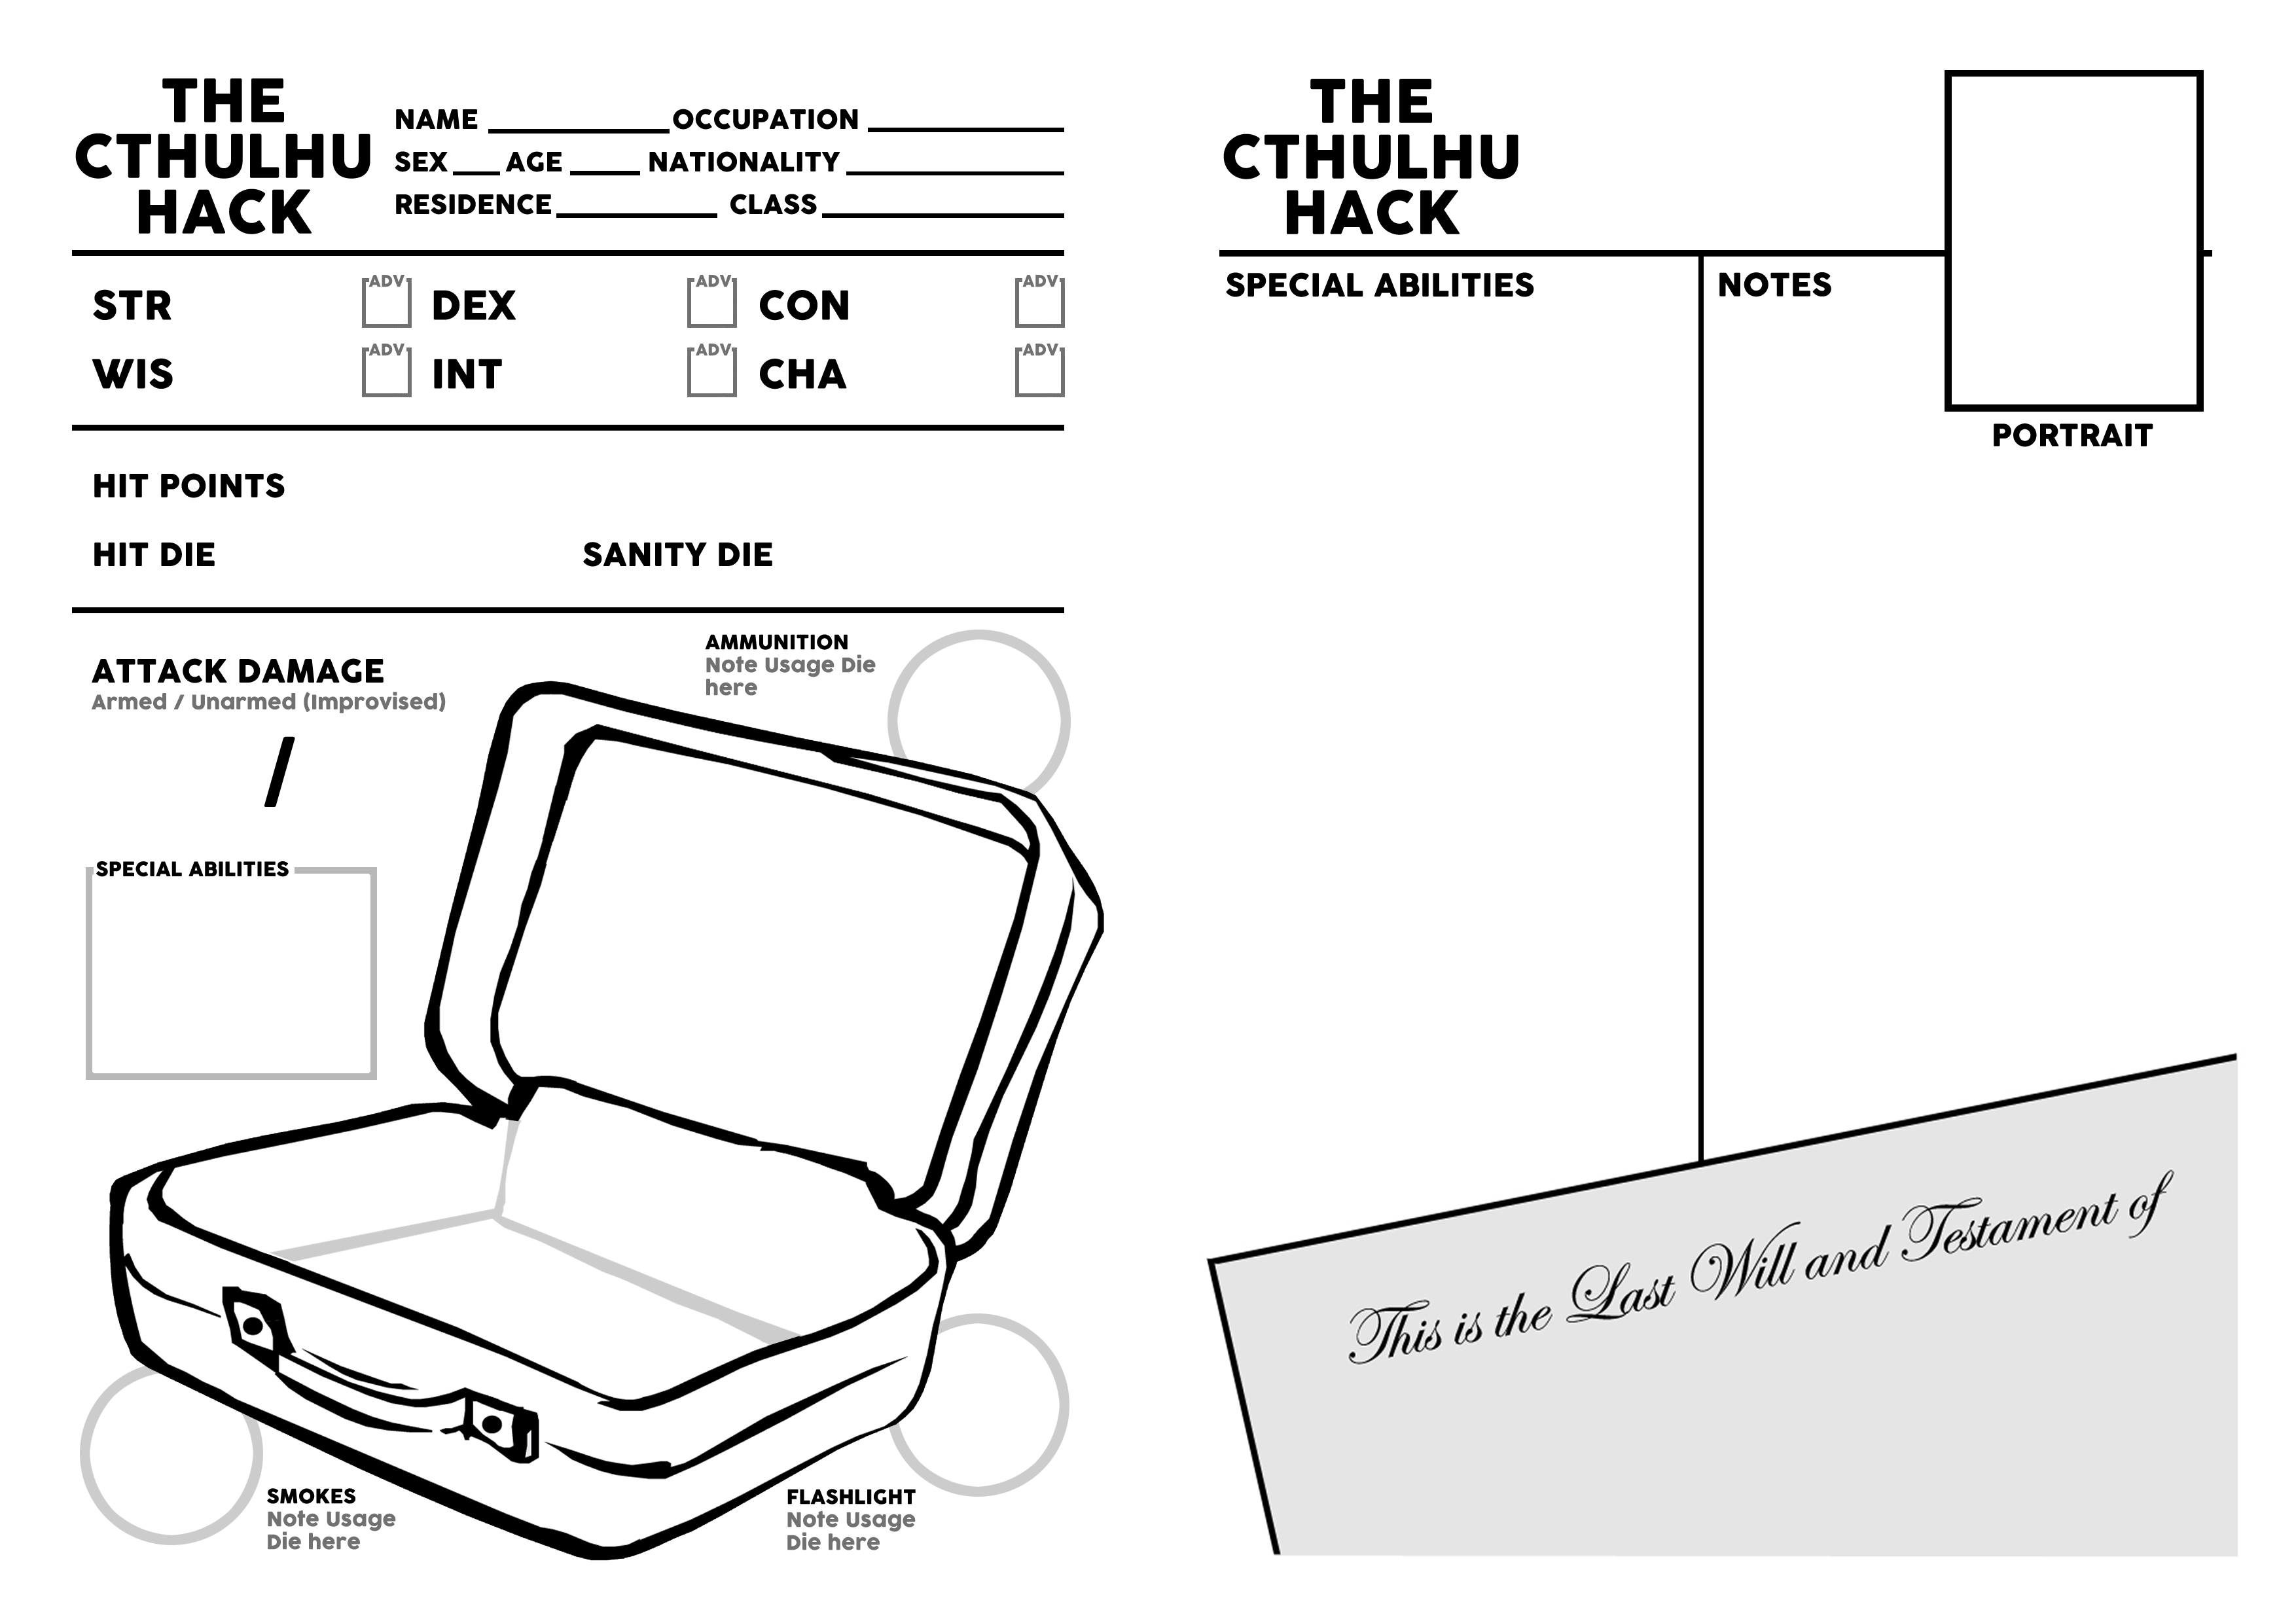 Extended Cthulhu Hack Character Sheet